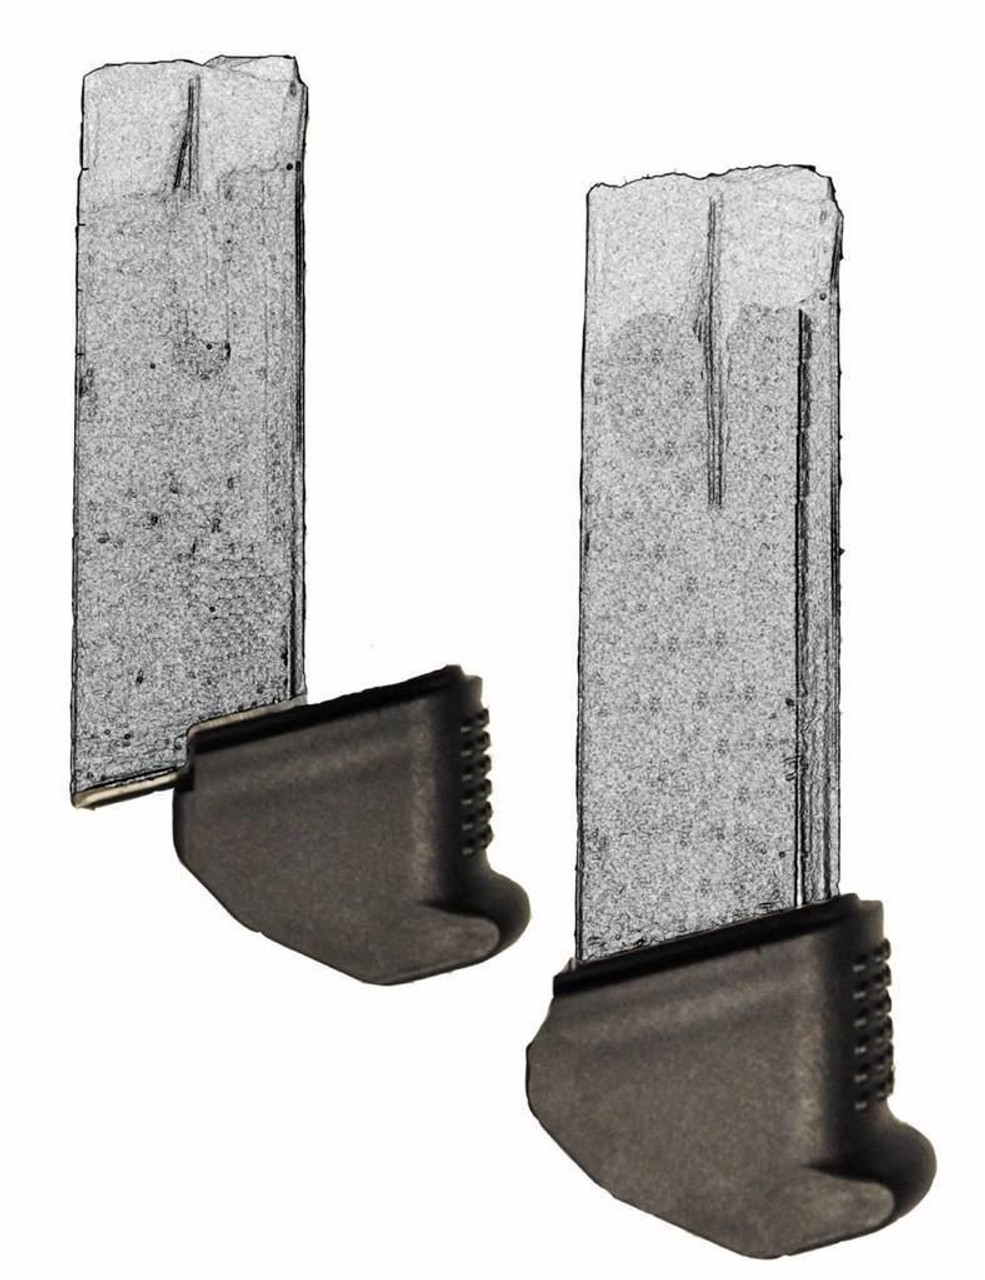 Garrison Grip ONE 1.5 Inch Extra Long Grip Extension Fits Springfield XD9 and XD40 Sub Compact